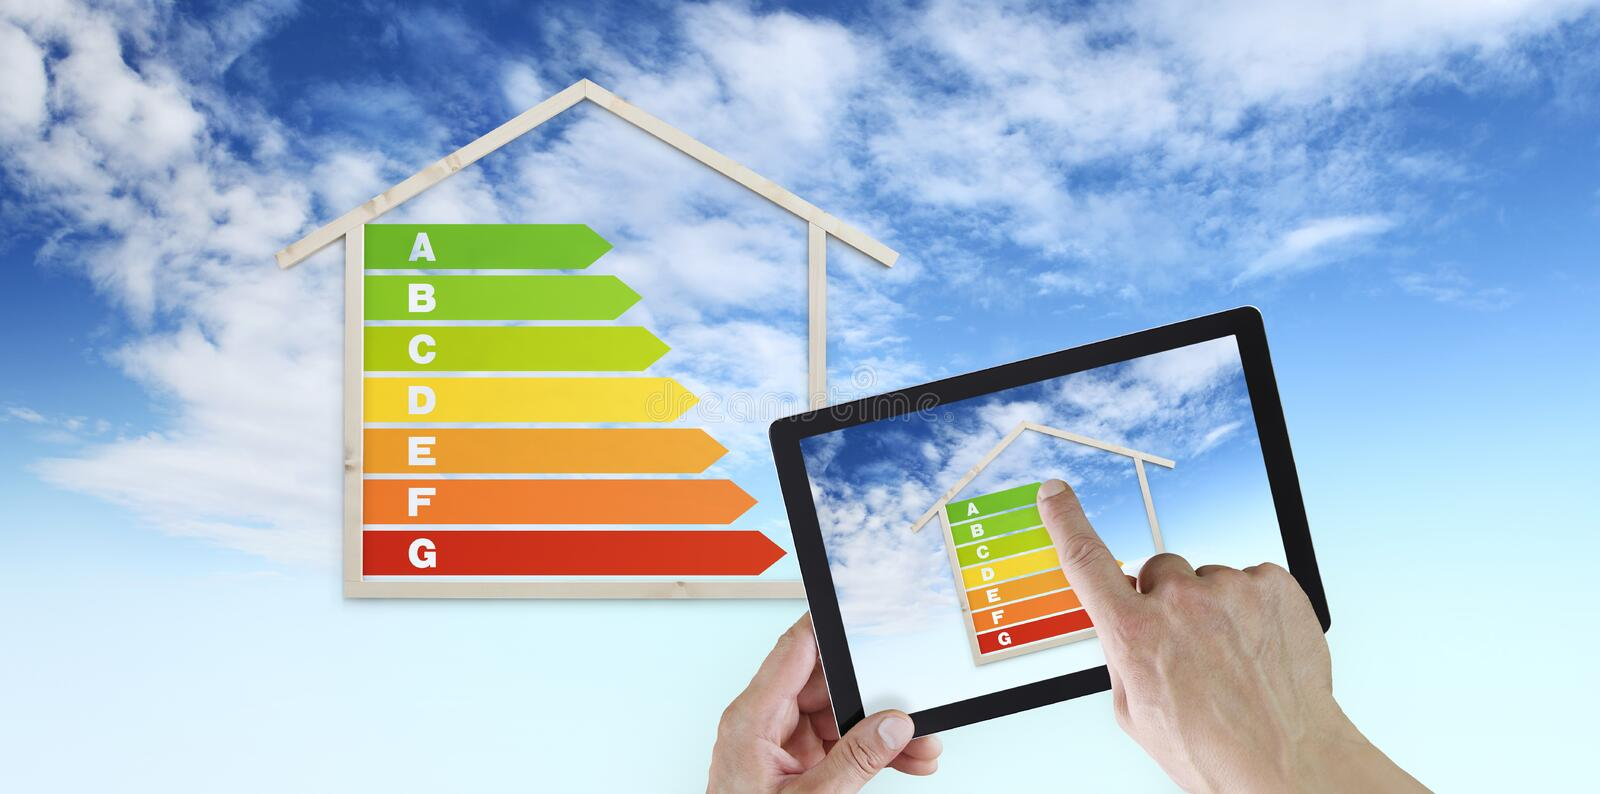 Hand touch screen of digital tablet with house shape and energy efficiency chart symbol, isolated on blu sky background, green. Buildings and save energy eco stock image